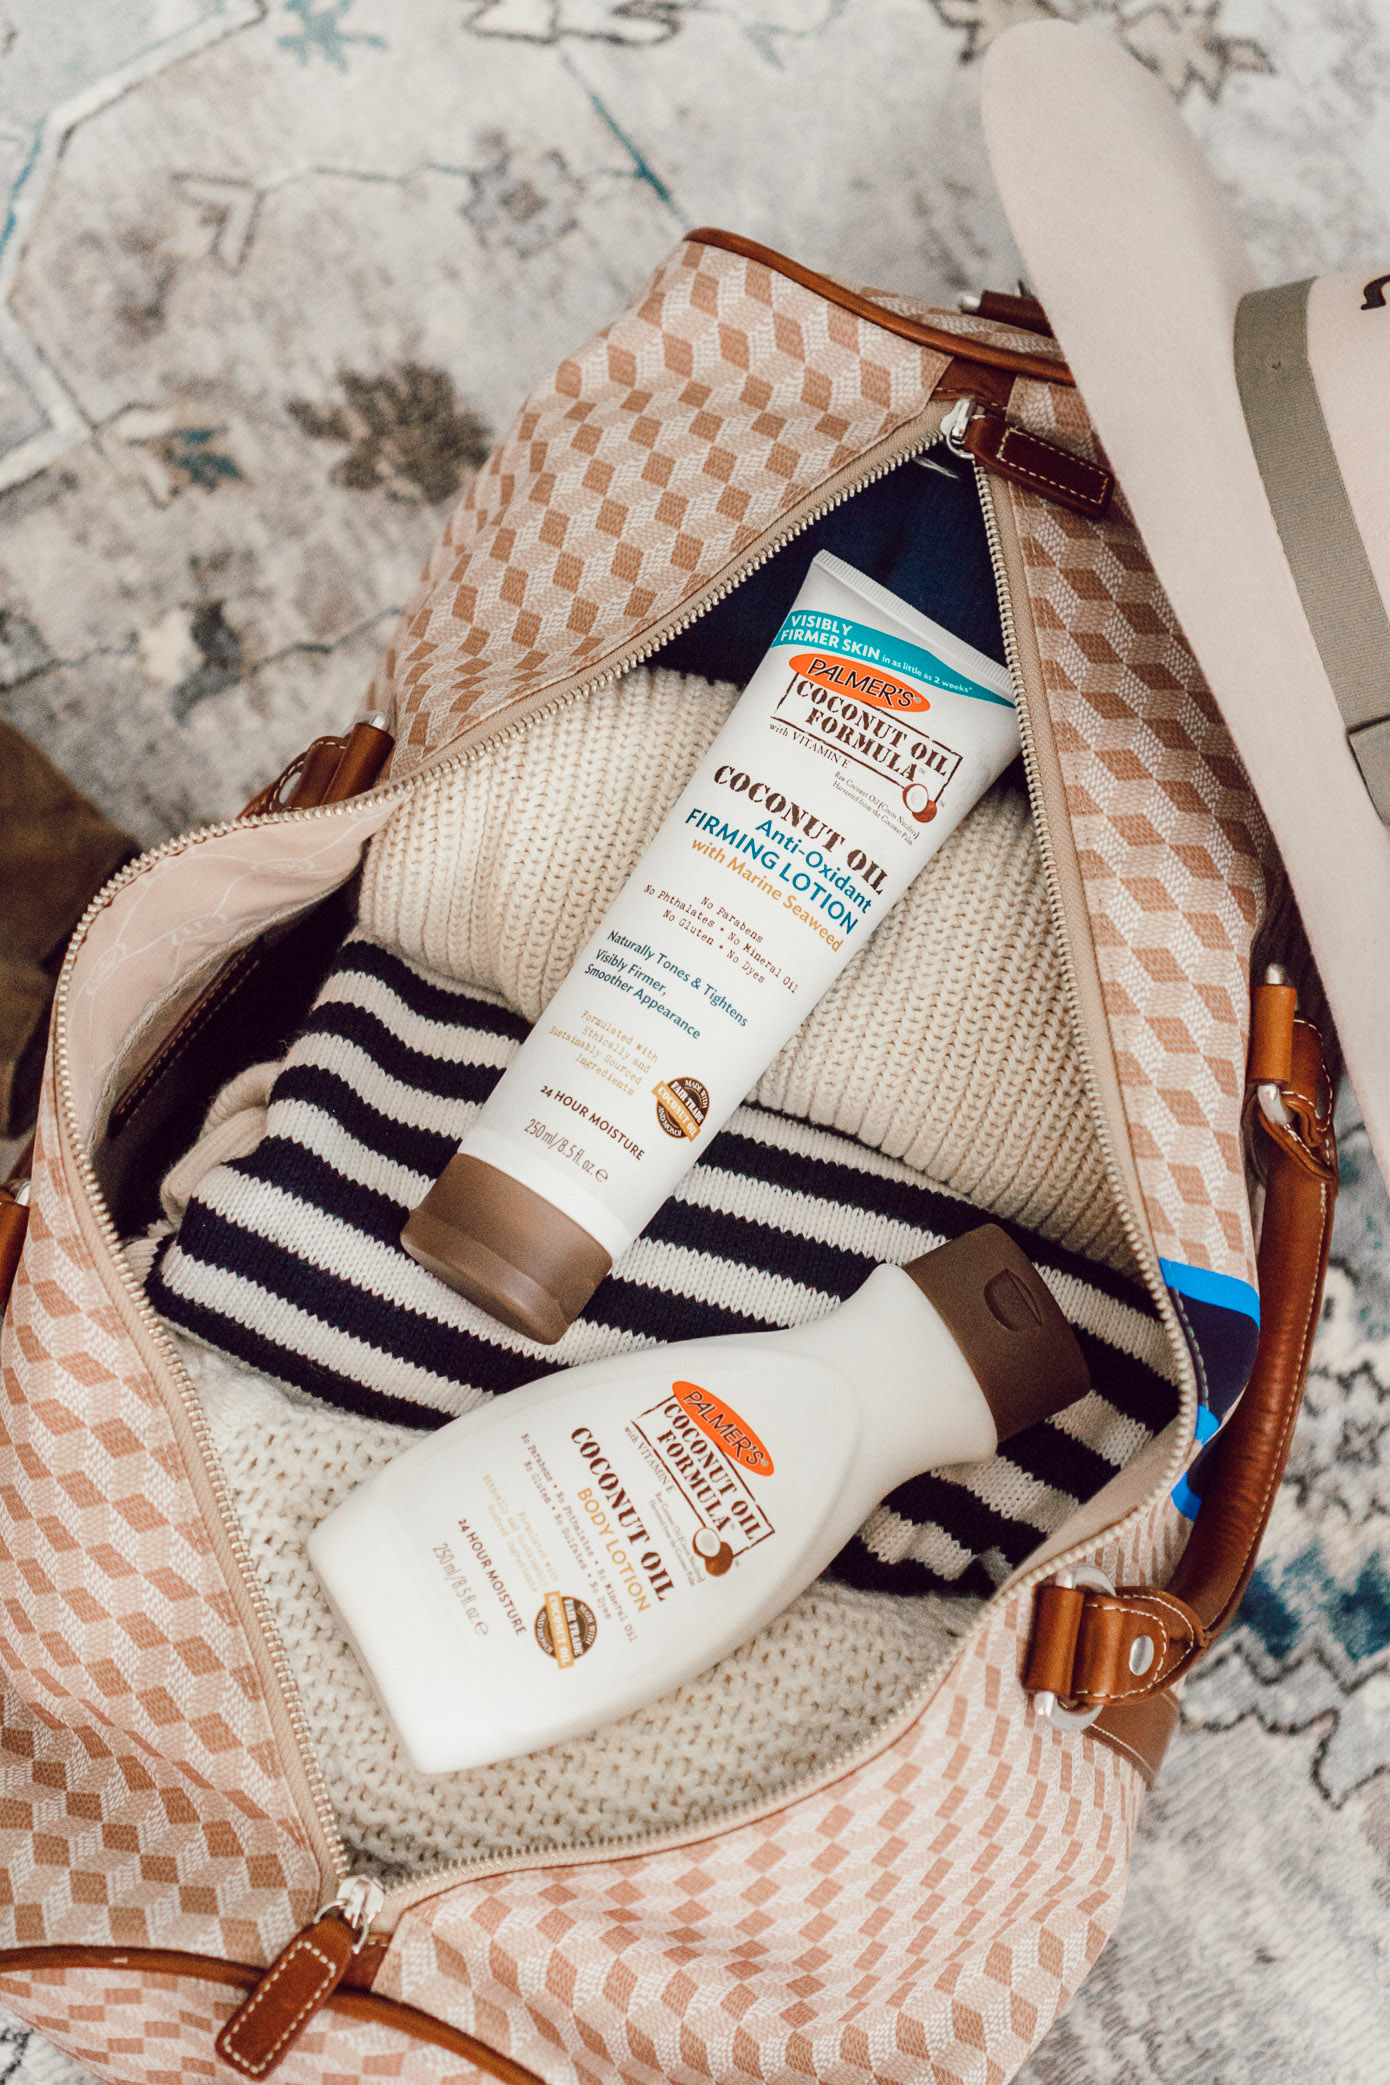 Five Ways to Hydrate Your Skin While Traveling